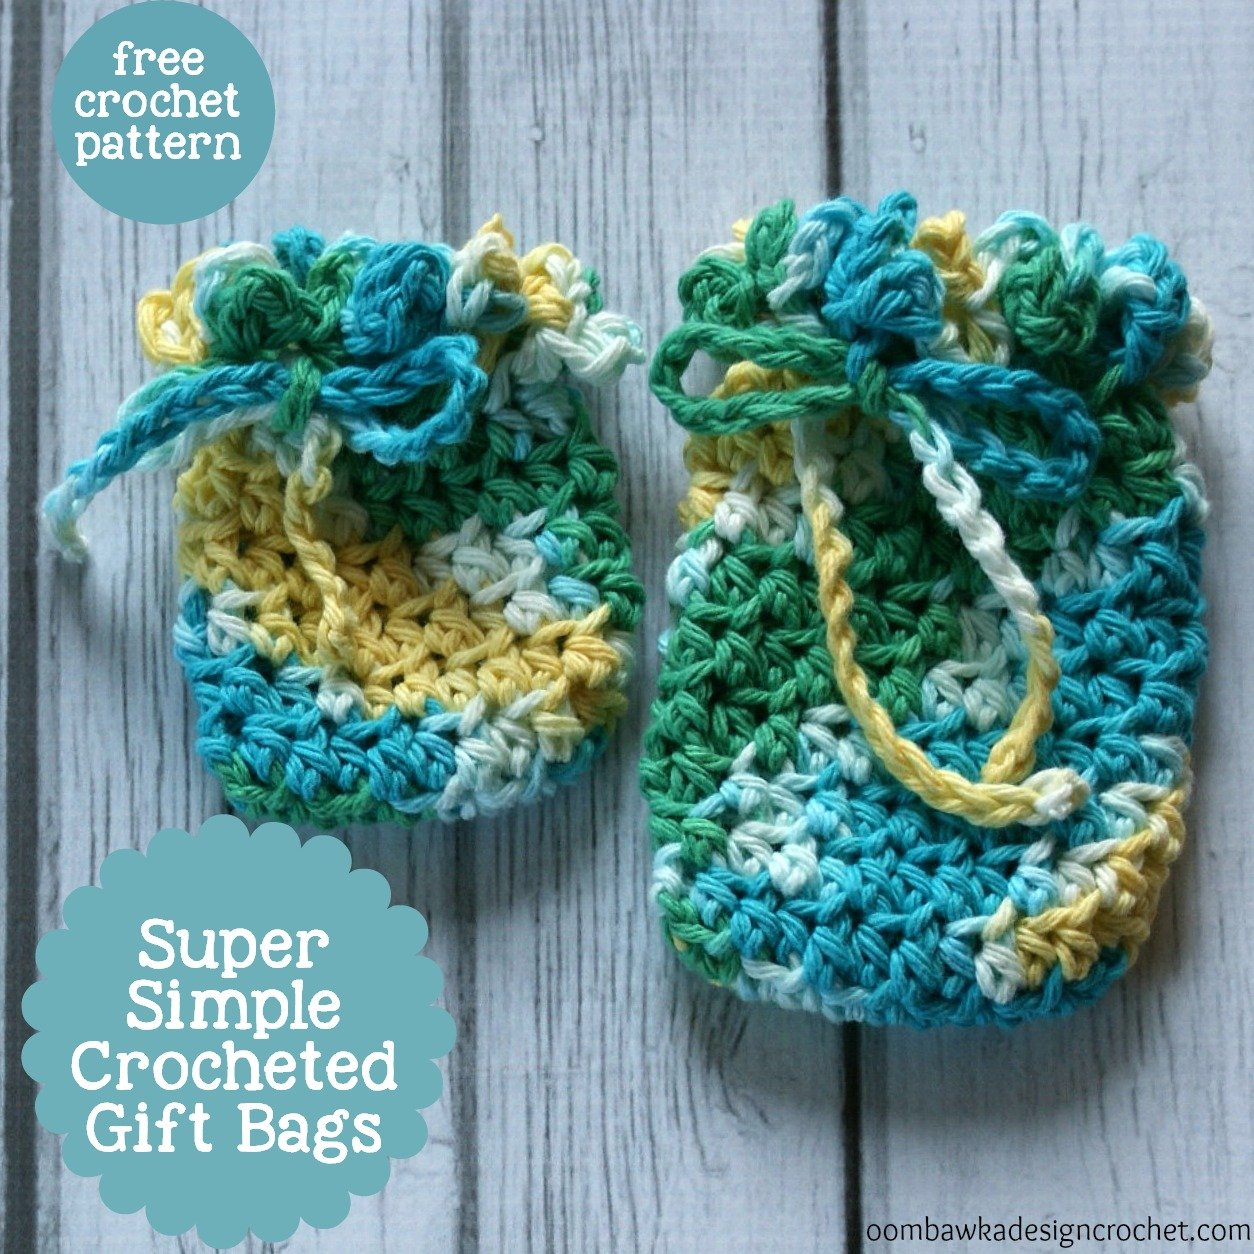 Super Simple Crocheted Gift Bags • Oombawka Design Crochet